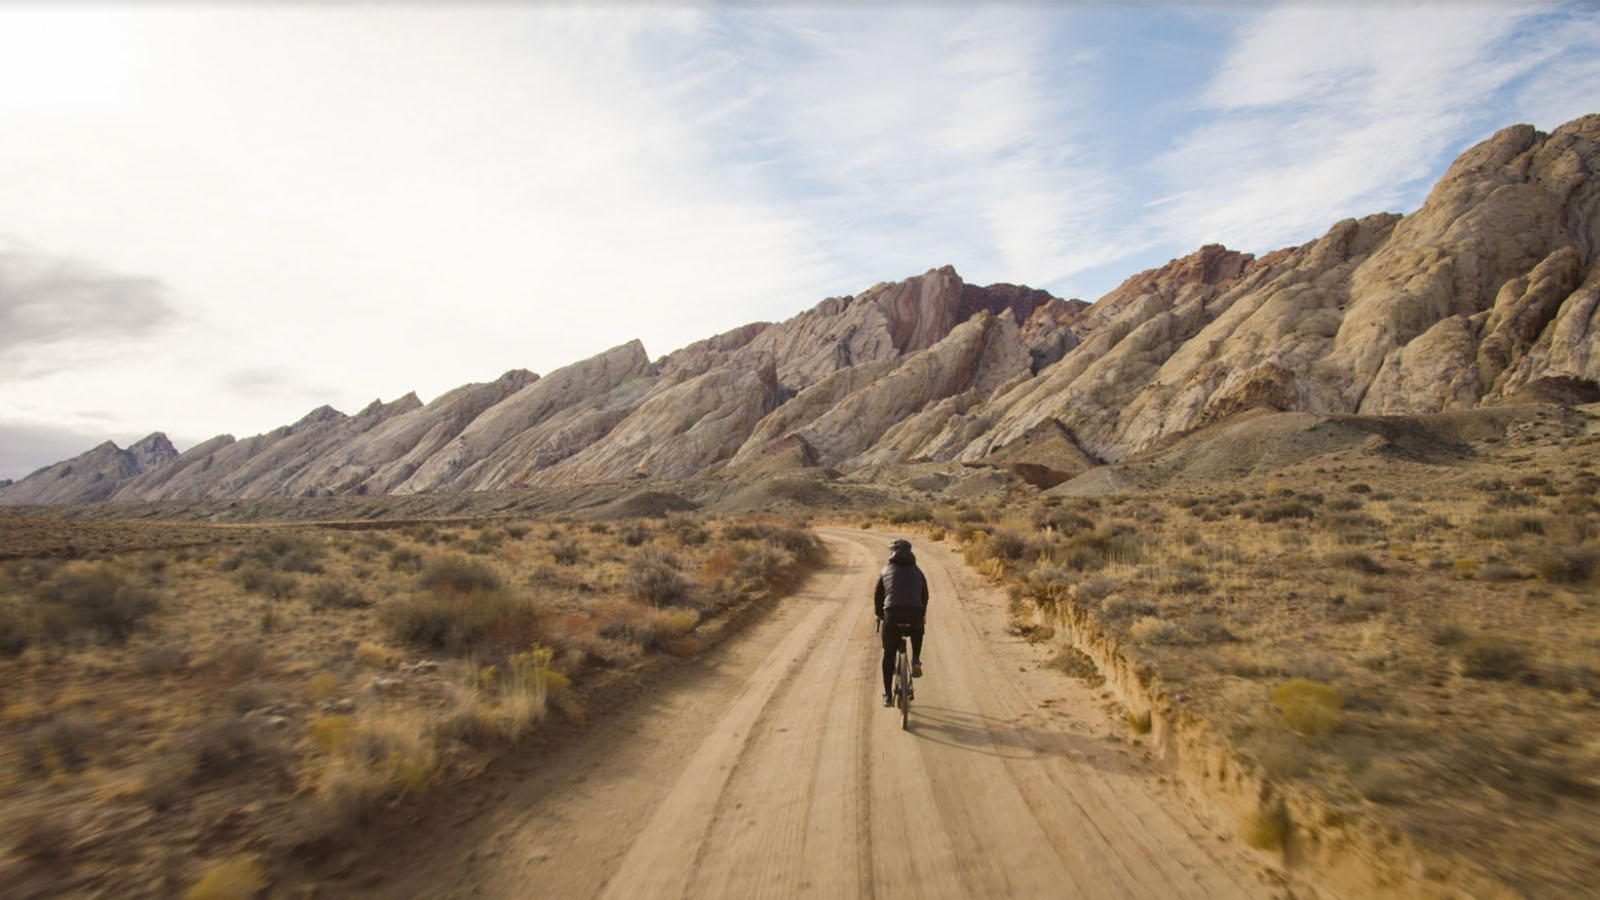 Mike Hopkins Wants You to Get Out and Ride - The Spirit of Adventure